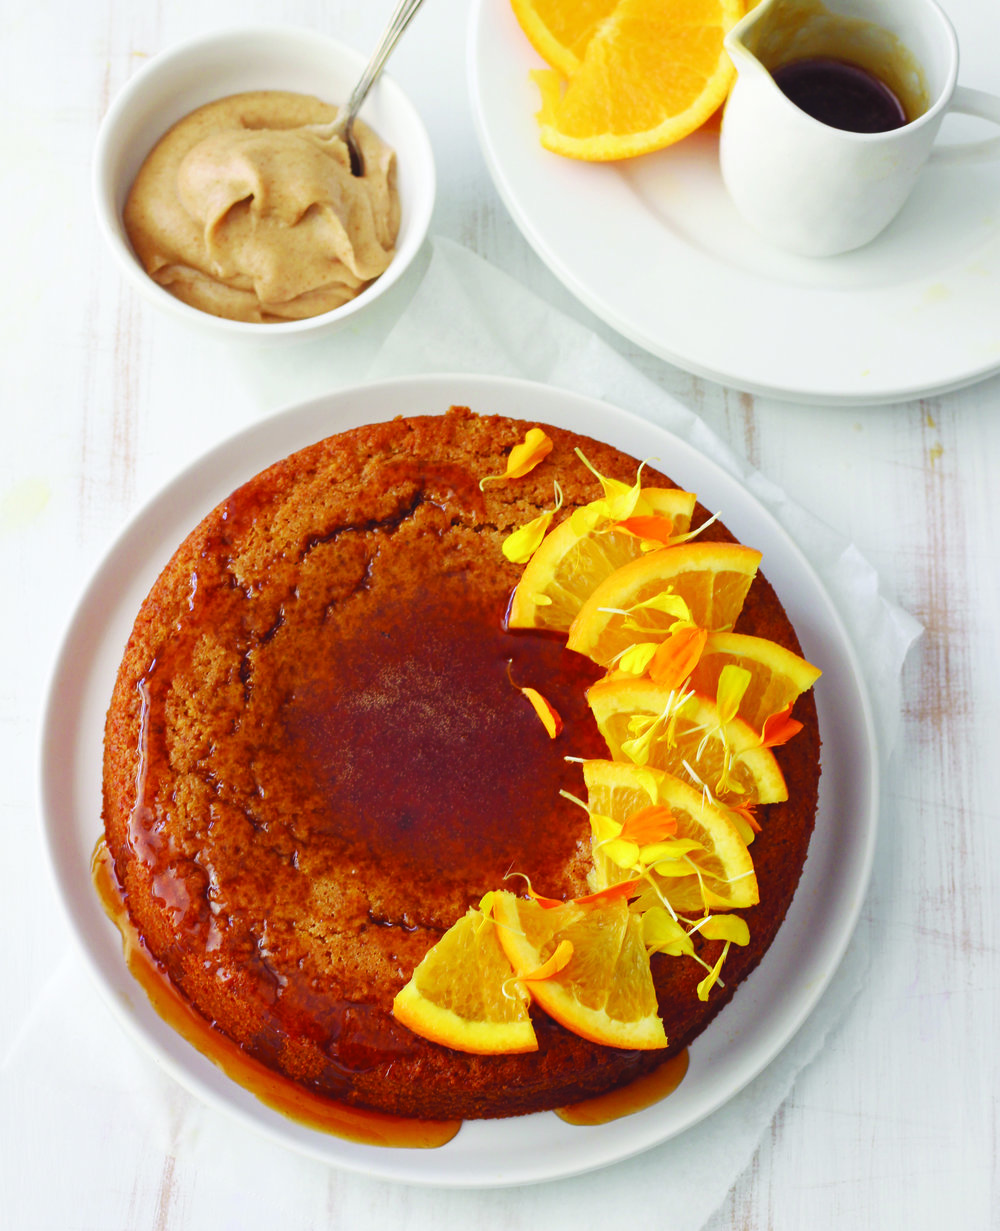 Spiced Vanilla and Orange Cake_7.jpg